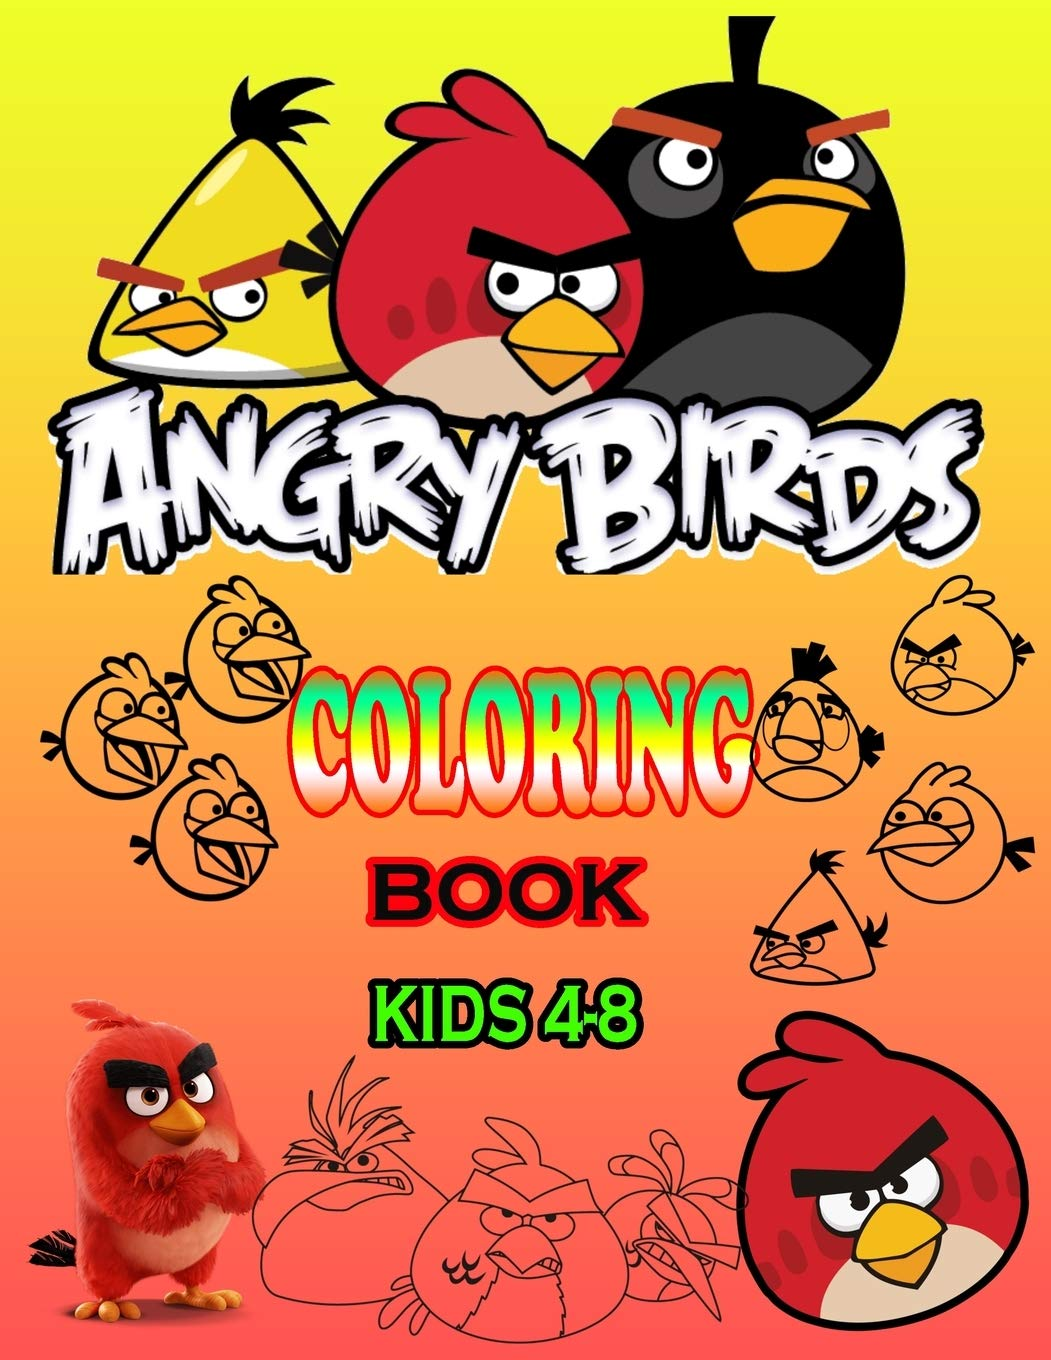 Angry Birds Coloring Book Kids 4 8 Exclusive Angry Bird Coloring Book Great Coloring Pages For Kids Drawing 50 Illustrations Makes For A Great Gift Of Kids House Icolor 9781702474047 Amazon Com Books